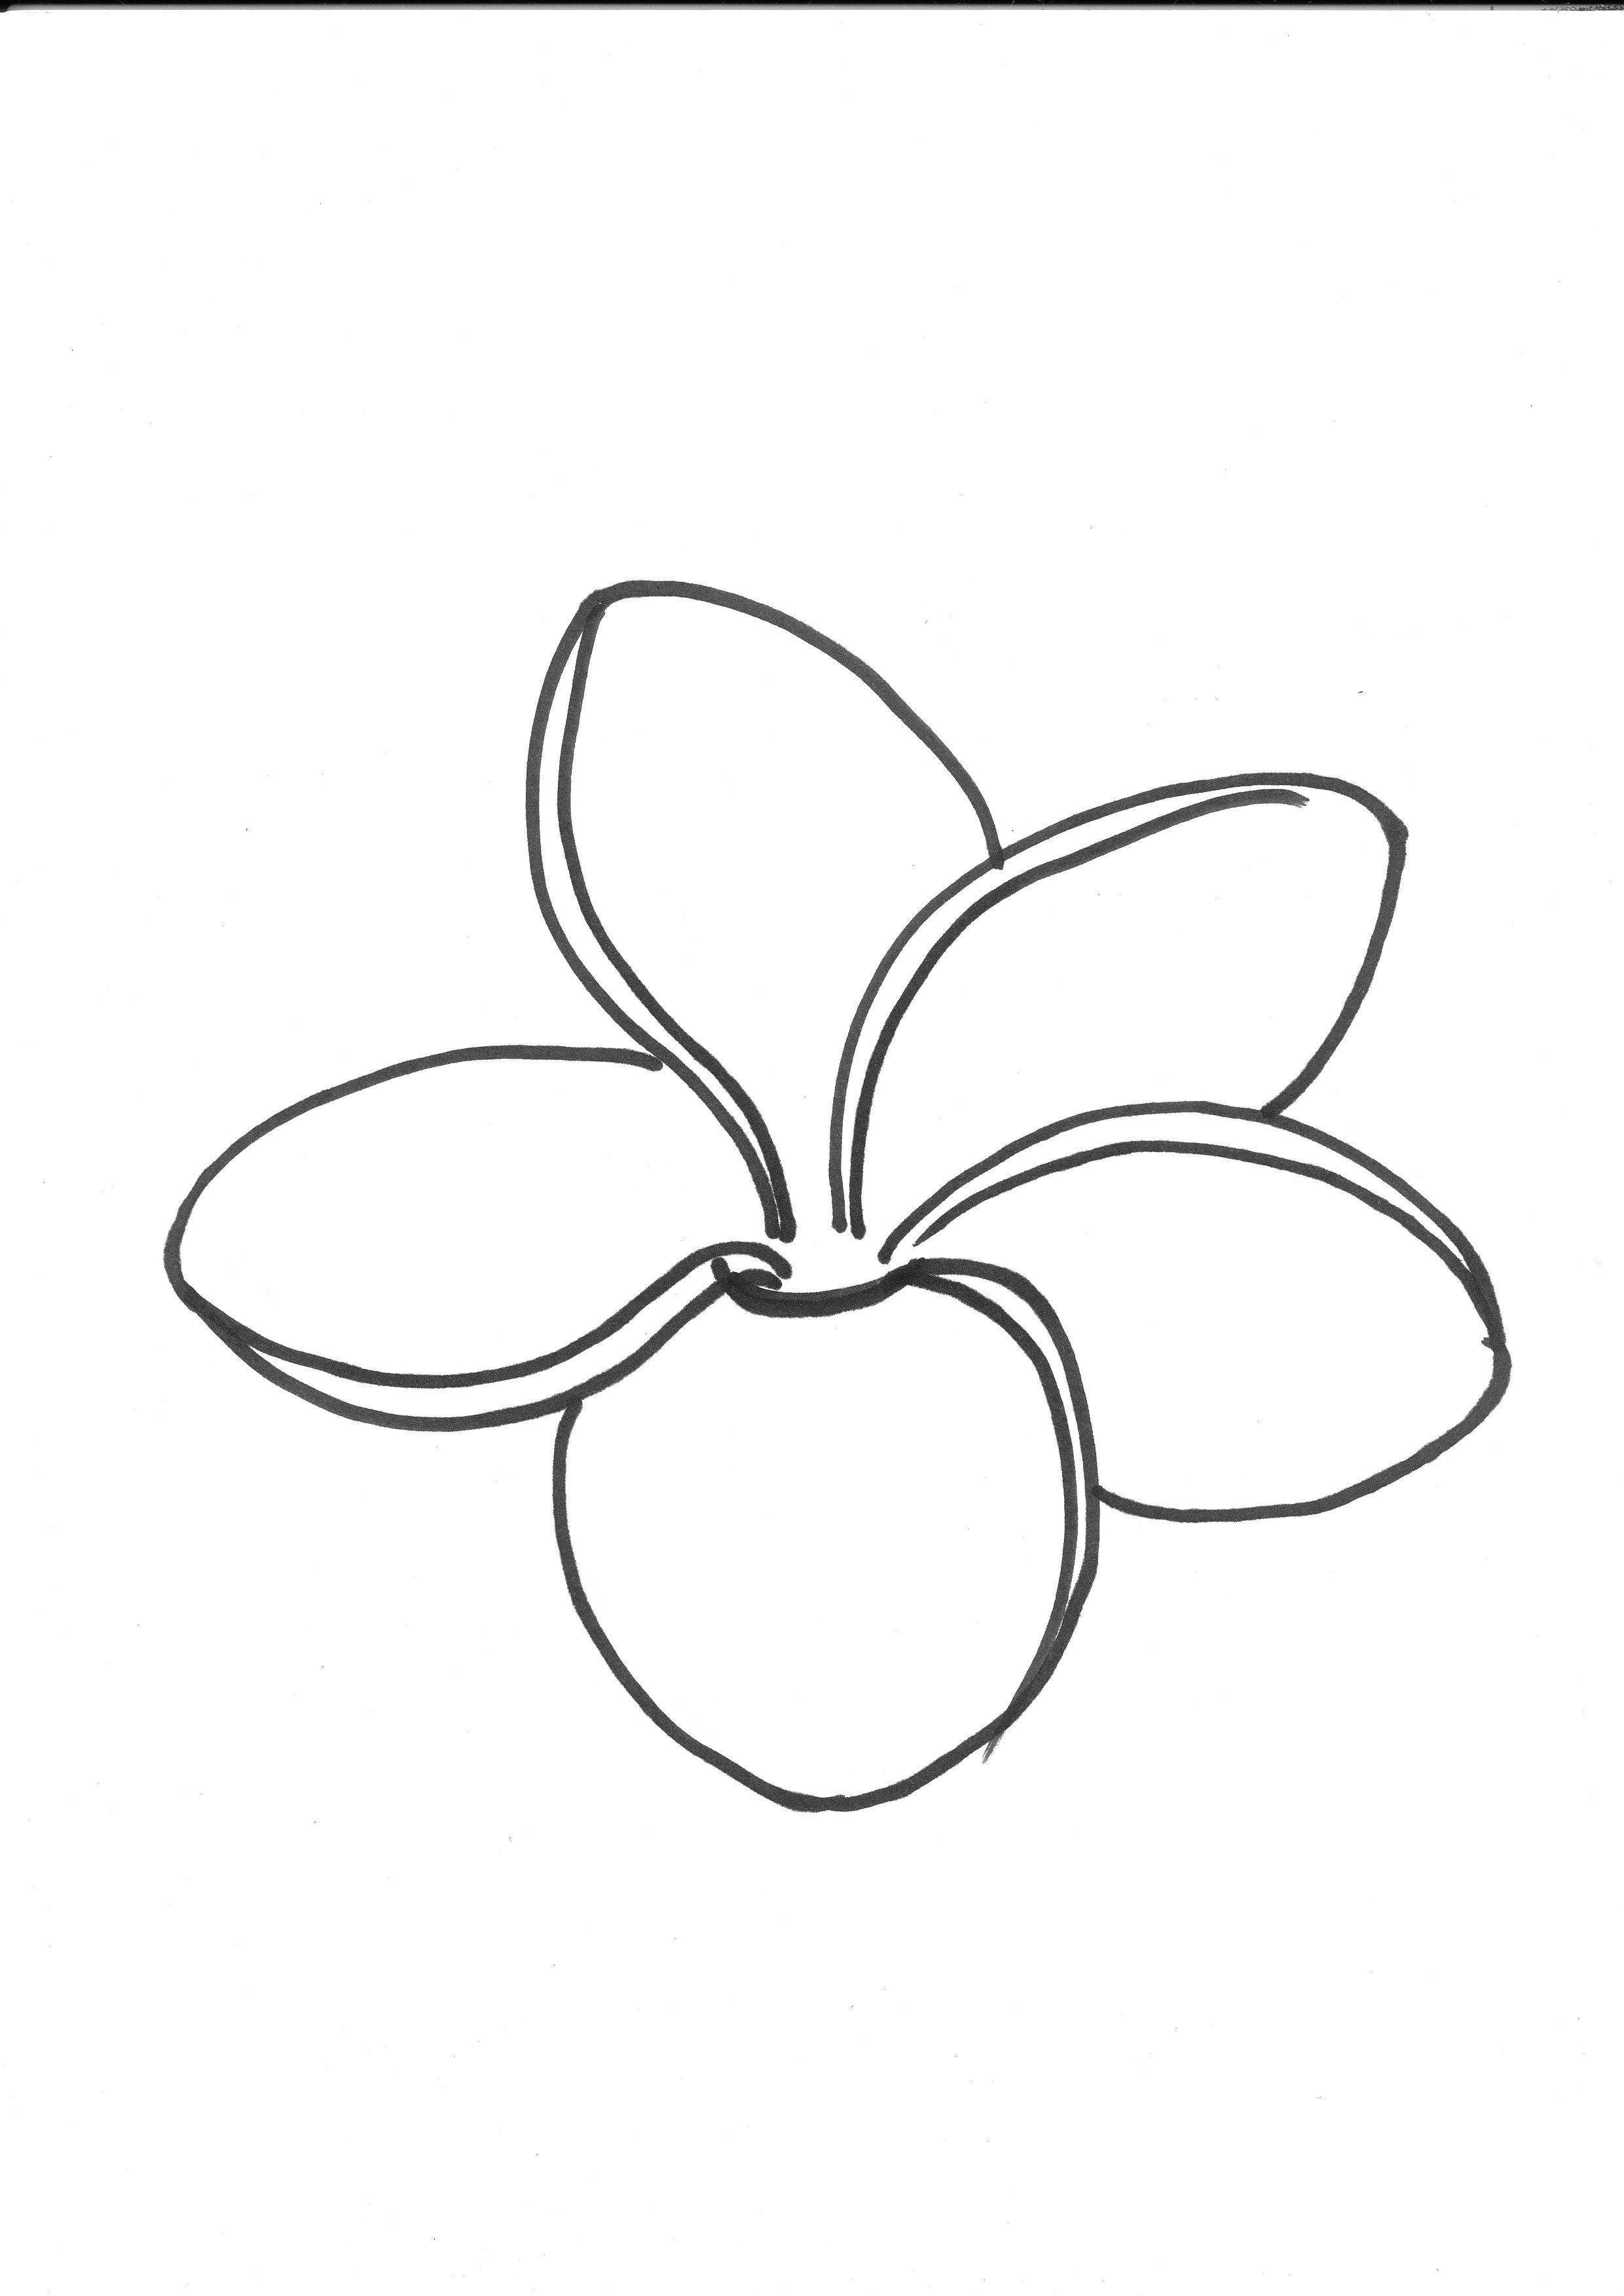 Frang 0007 Jpg 2 480 3 507 Pixels Flower Line Drawings Flower Tattoo Drawings Flower Drawing